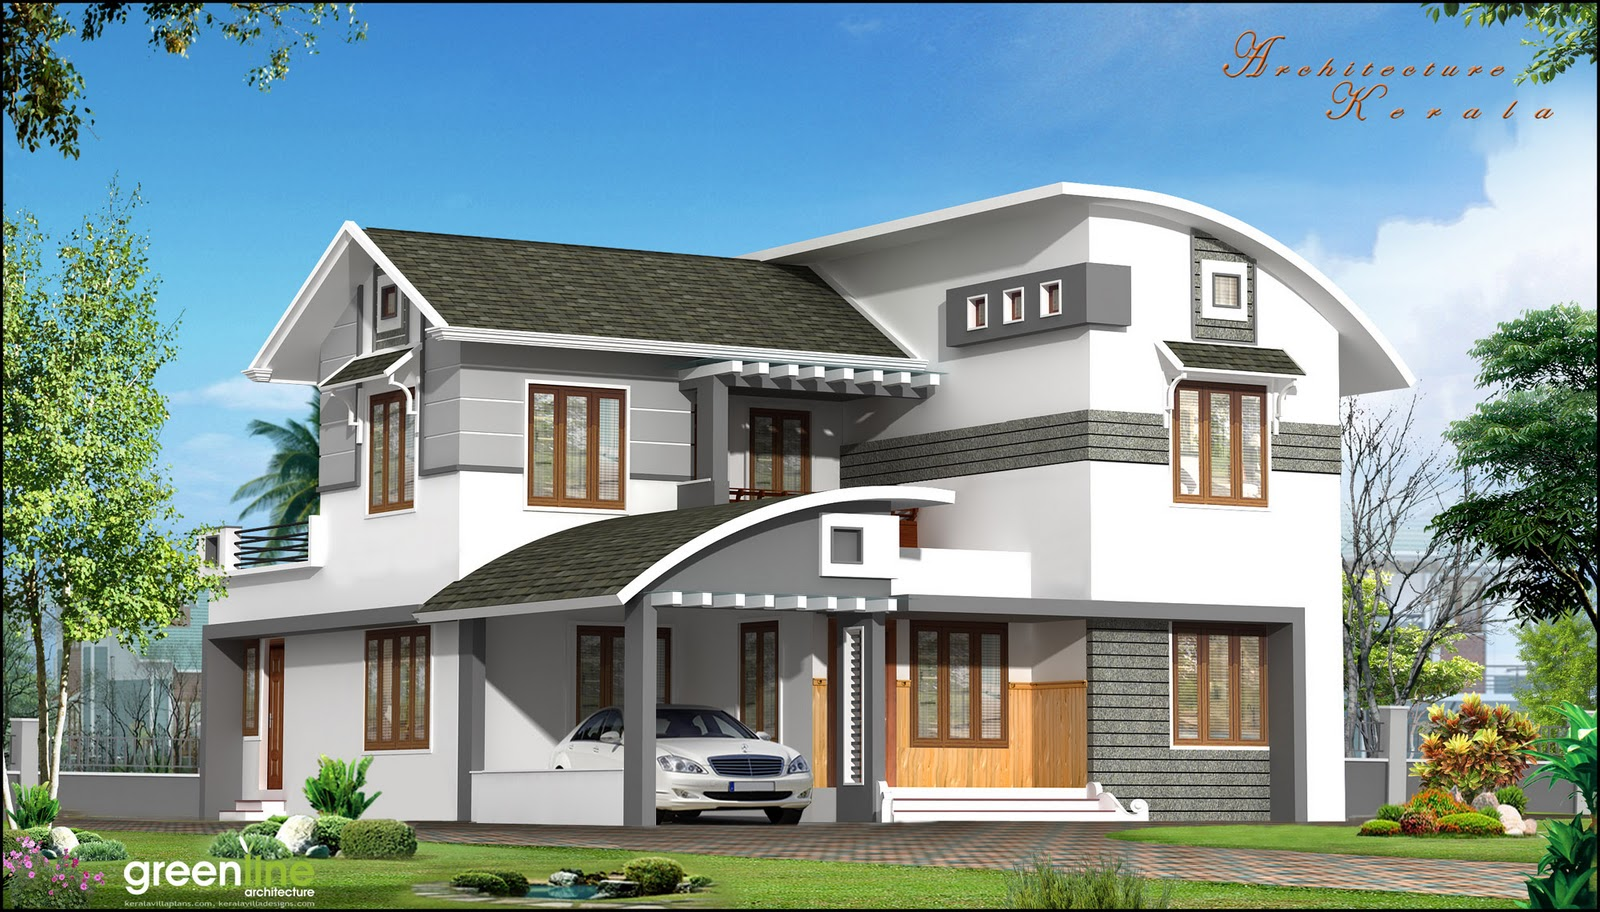 Architecture kerala a beautiful house elevation for Modern kerala style house plans with photos